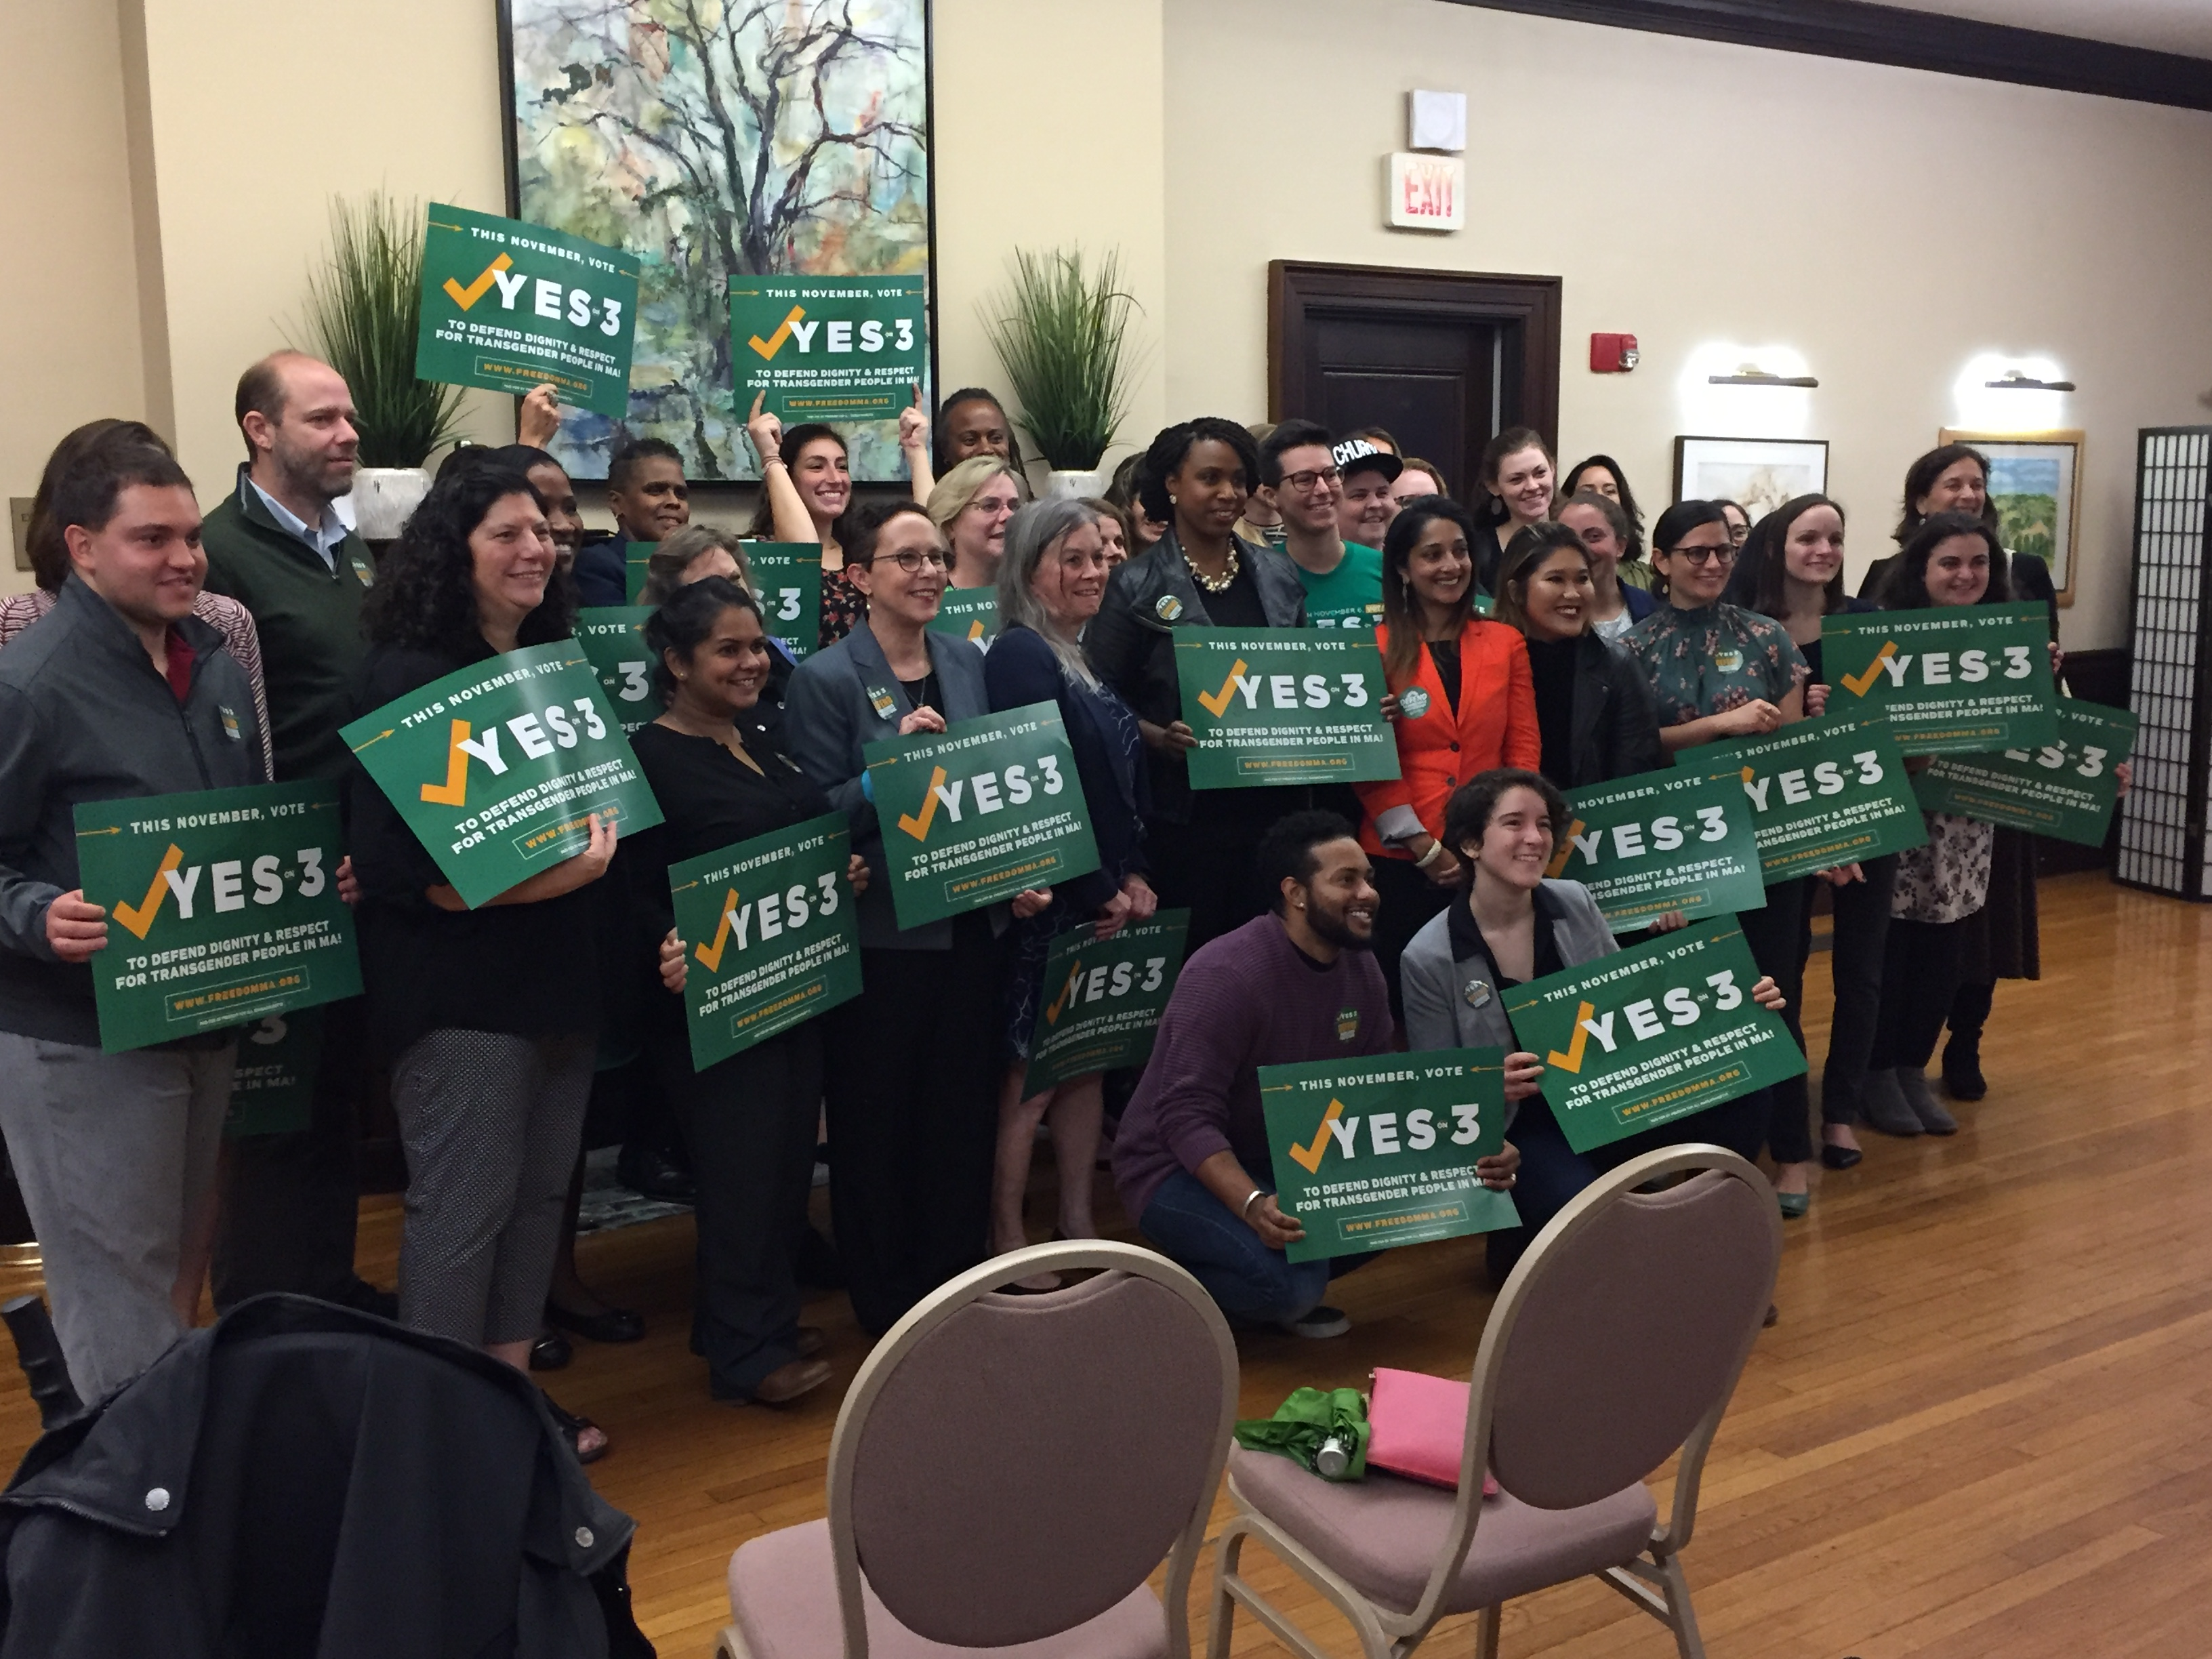 """Rep Ayanna Pressley stands with group of sipporters holding """"Yes on 3"""" signs."""